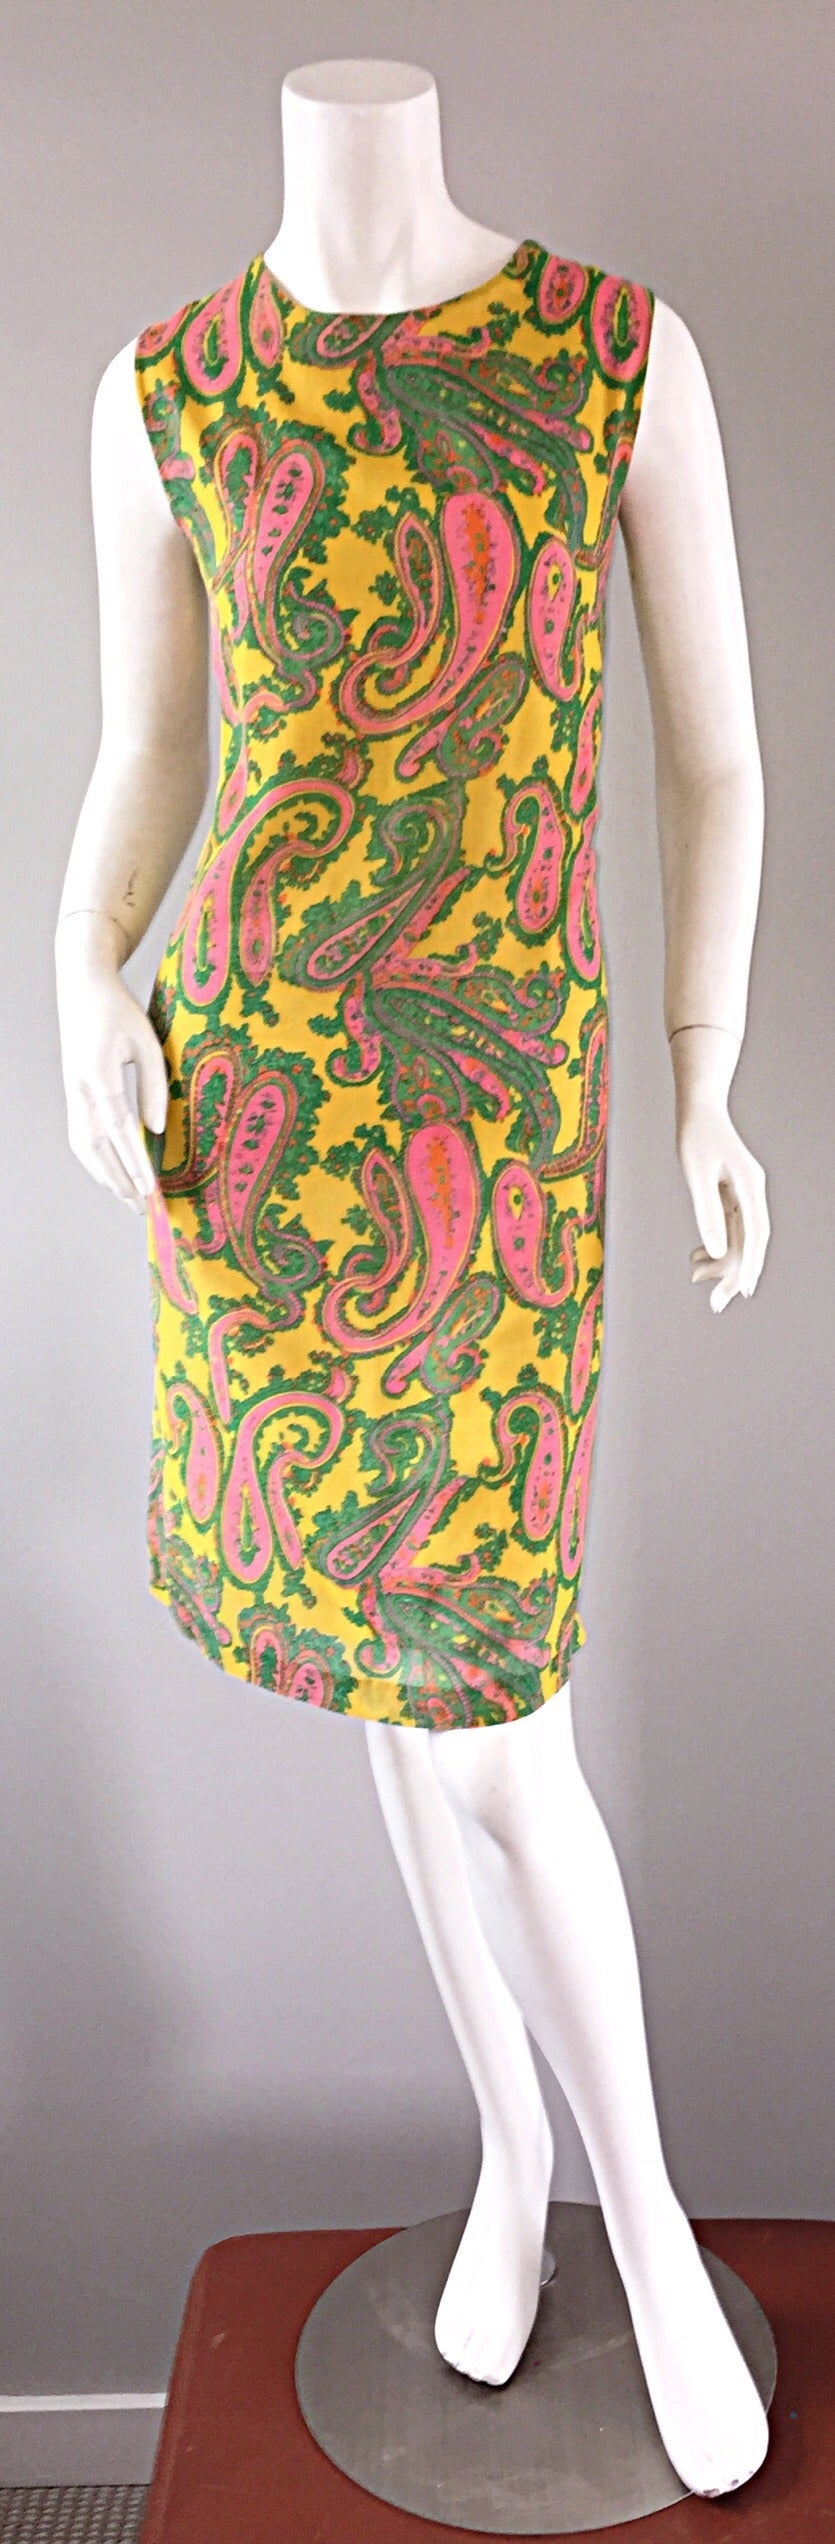 1960s 60s Yellow + Pink + Green Paisley Mod Retro Vintage Cotton Shift Dress For Sale 4